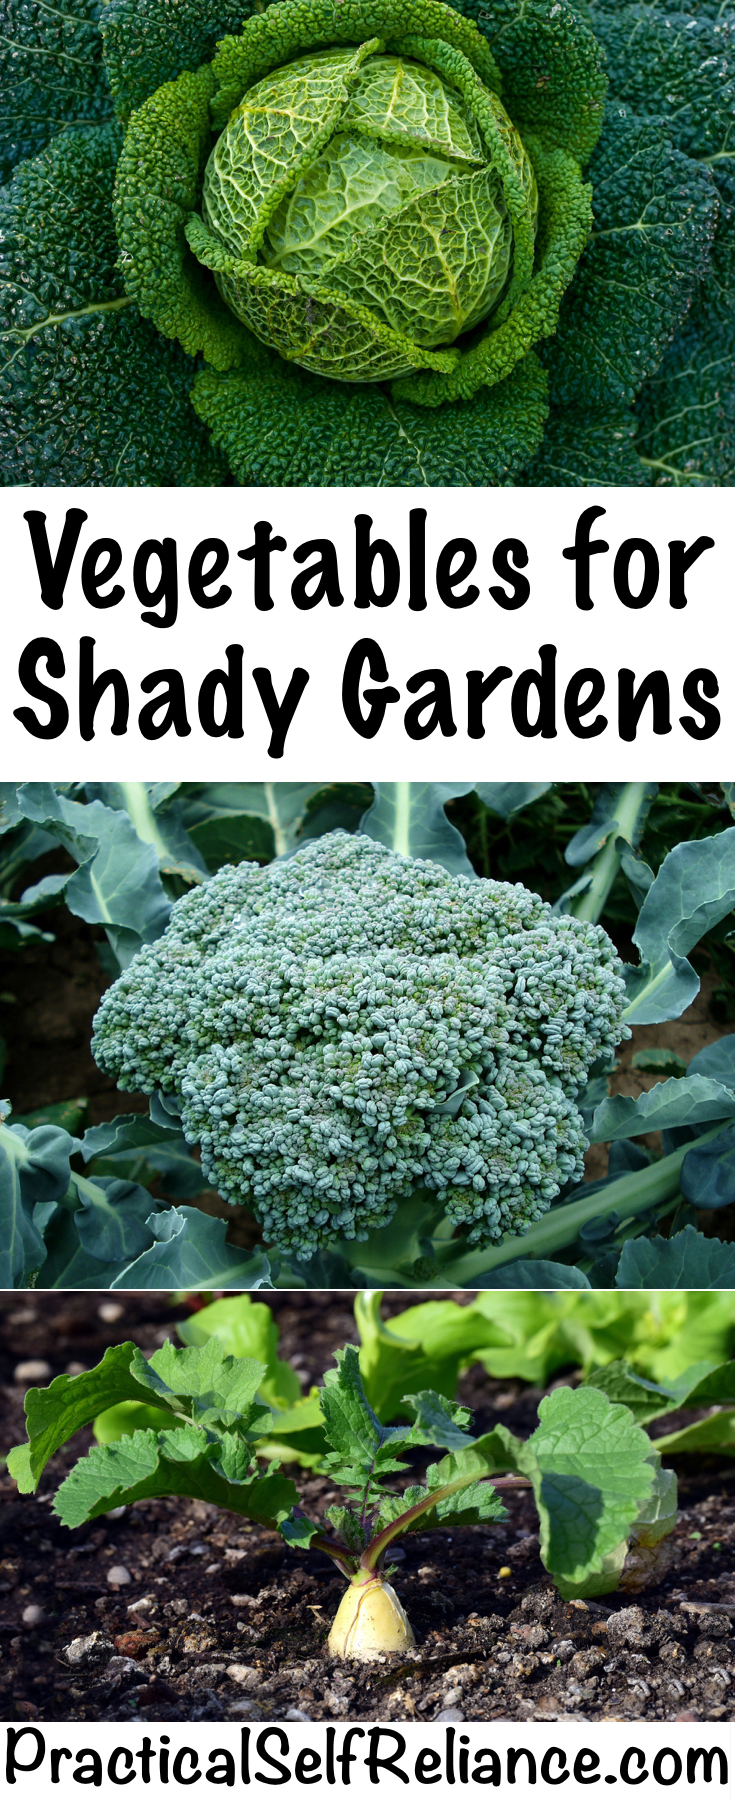 Vegetables for Shady Gardens